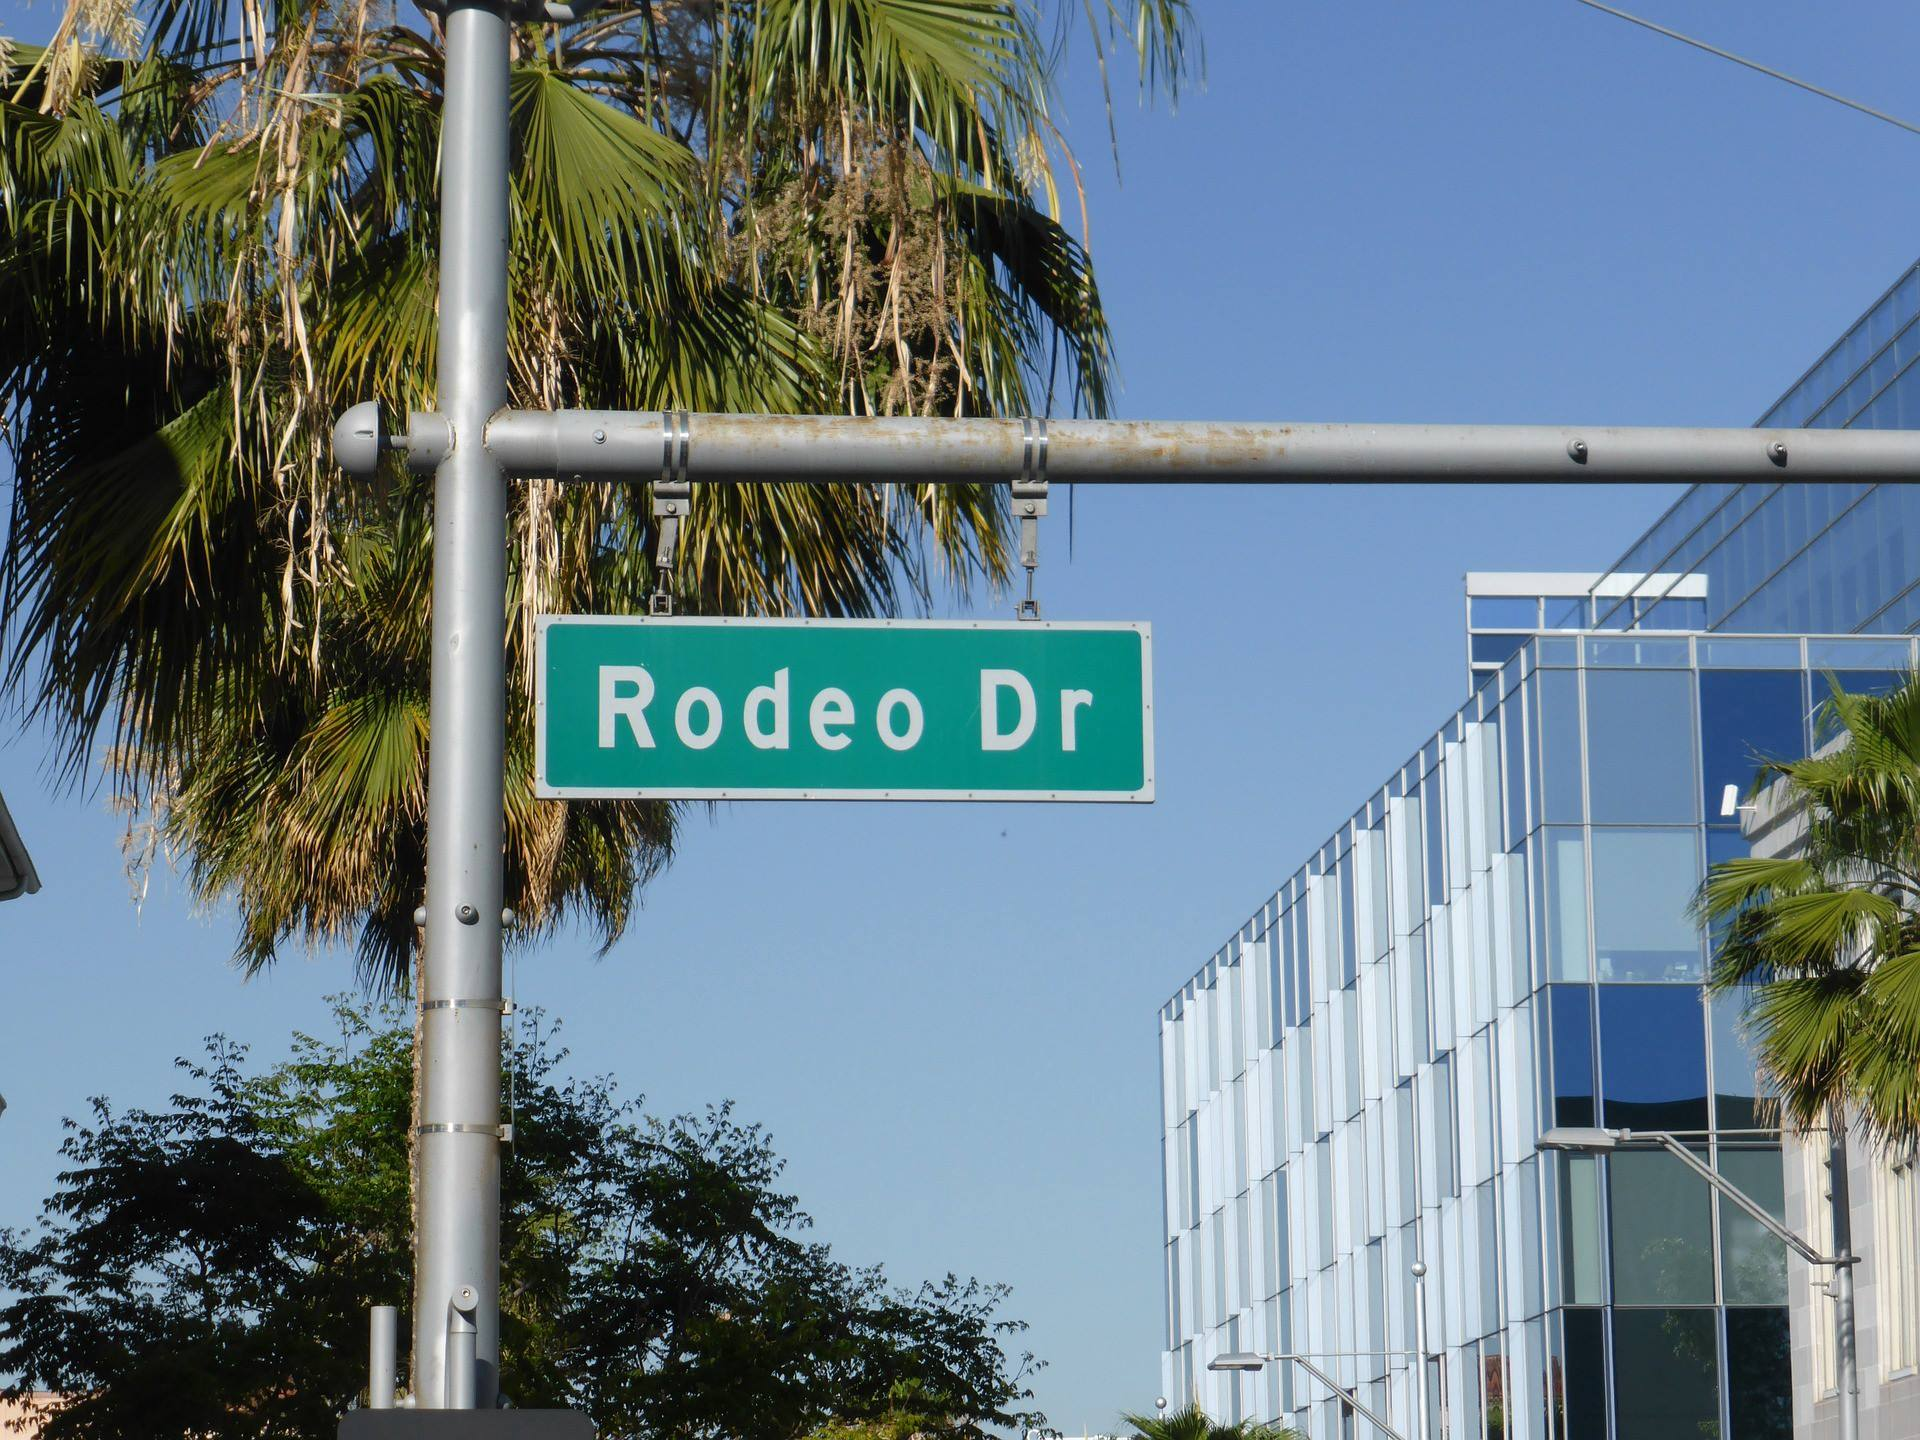 los angeles california rodeo drive palm trees